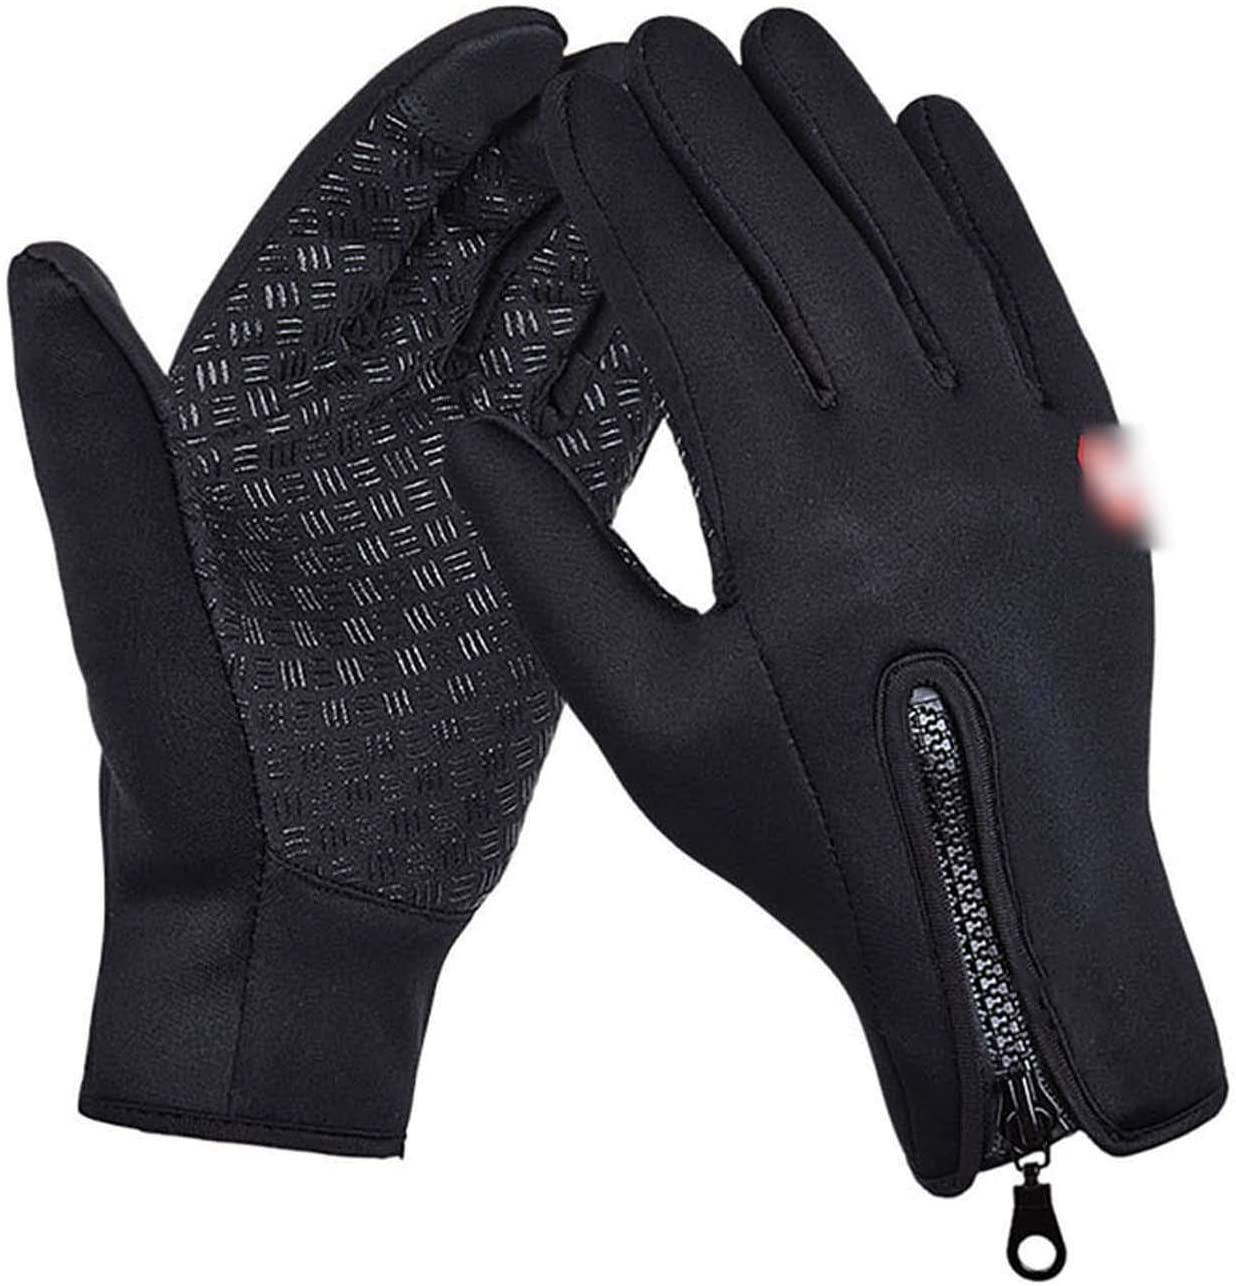 YR5V4V Winter Women Men Ski Snowboard Gloves Motorcycle Riding Waterproof Snow Windstopper Camping Leisure Skiing Gloves,YZ0228B,S,Ch